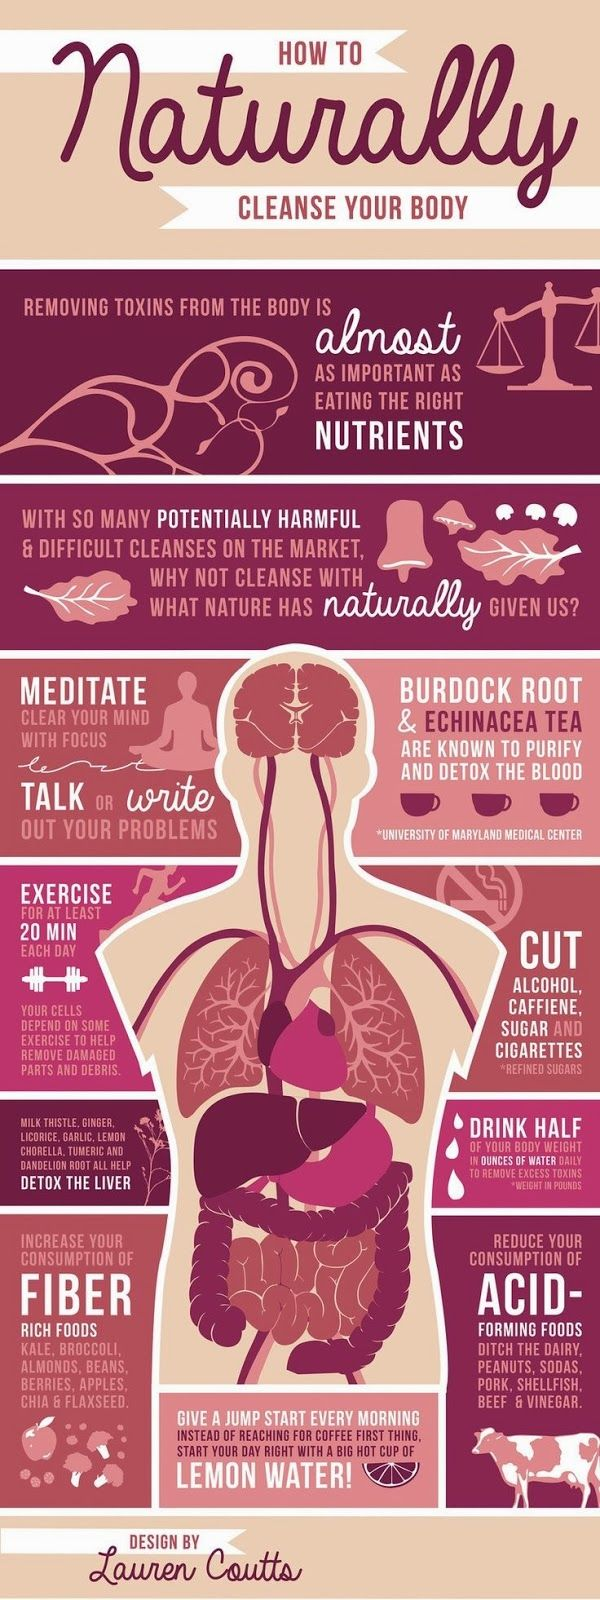 Natural Cleanse_Infographic